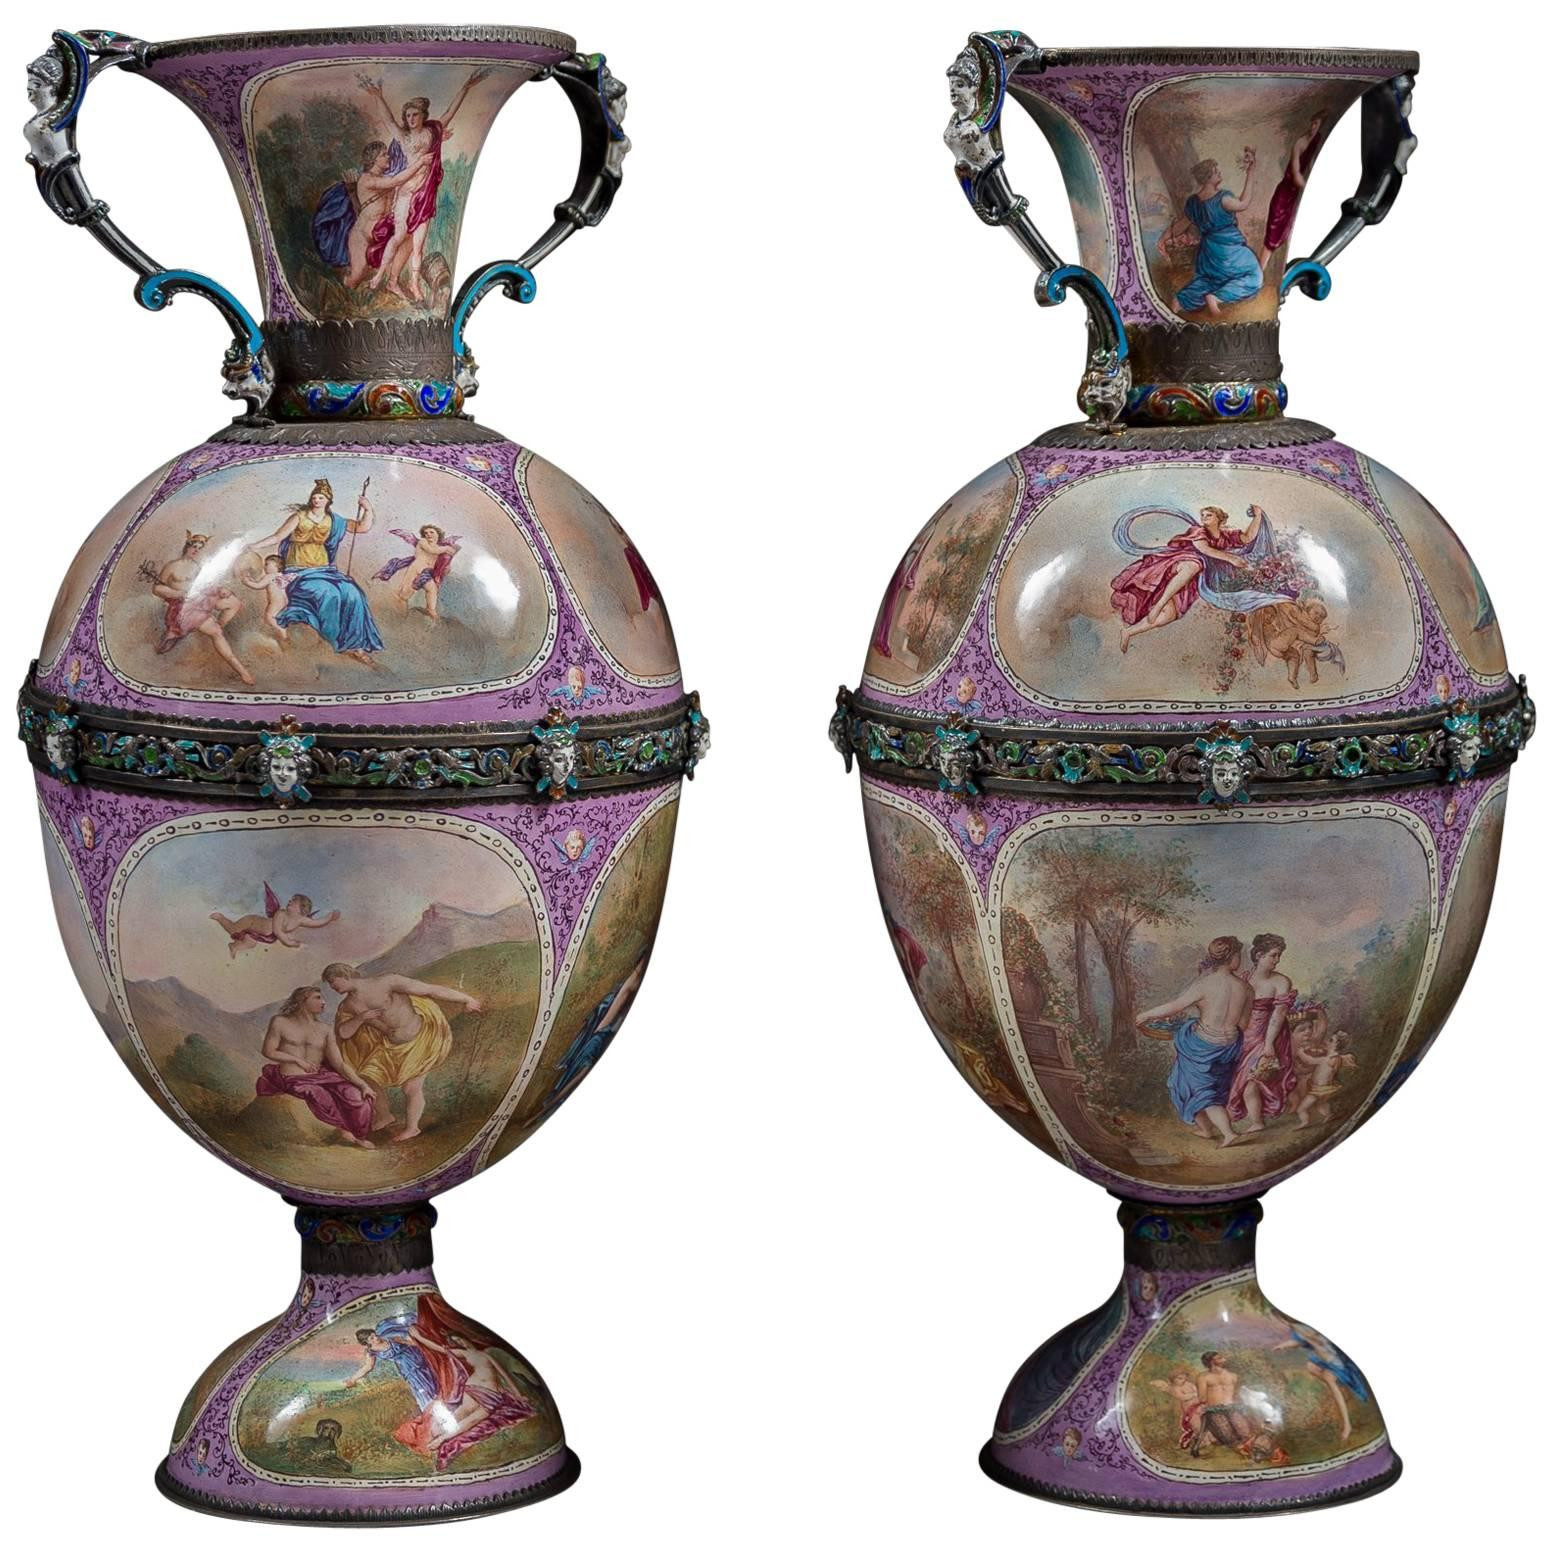 Vintage Japanese Bronze Vase Of A Pair Of Large Early 20th Century Japanese Cloisionne Enamel Palace with Regard to A Pair Of Large Early 20th Century Japanese Cloisionne Enamel Palace Vases for Sale at 1stdibs